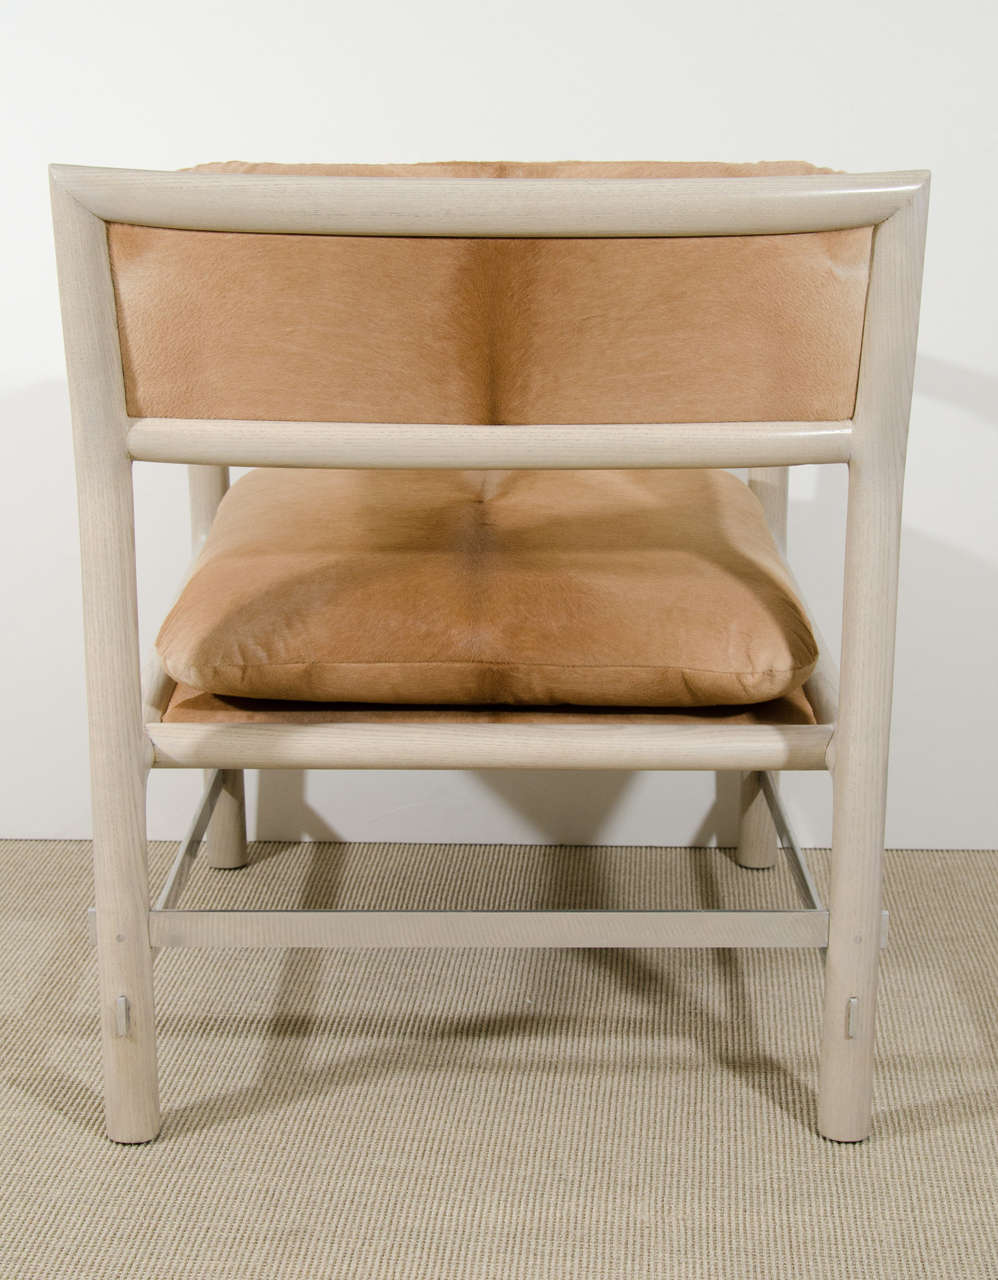 Pair of Edward Wormley for Dunbar Chairs in Cowhide, circa 1960, USA 7